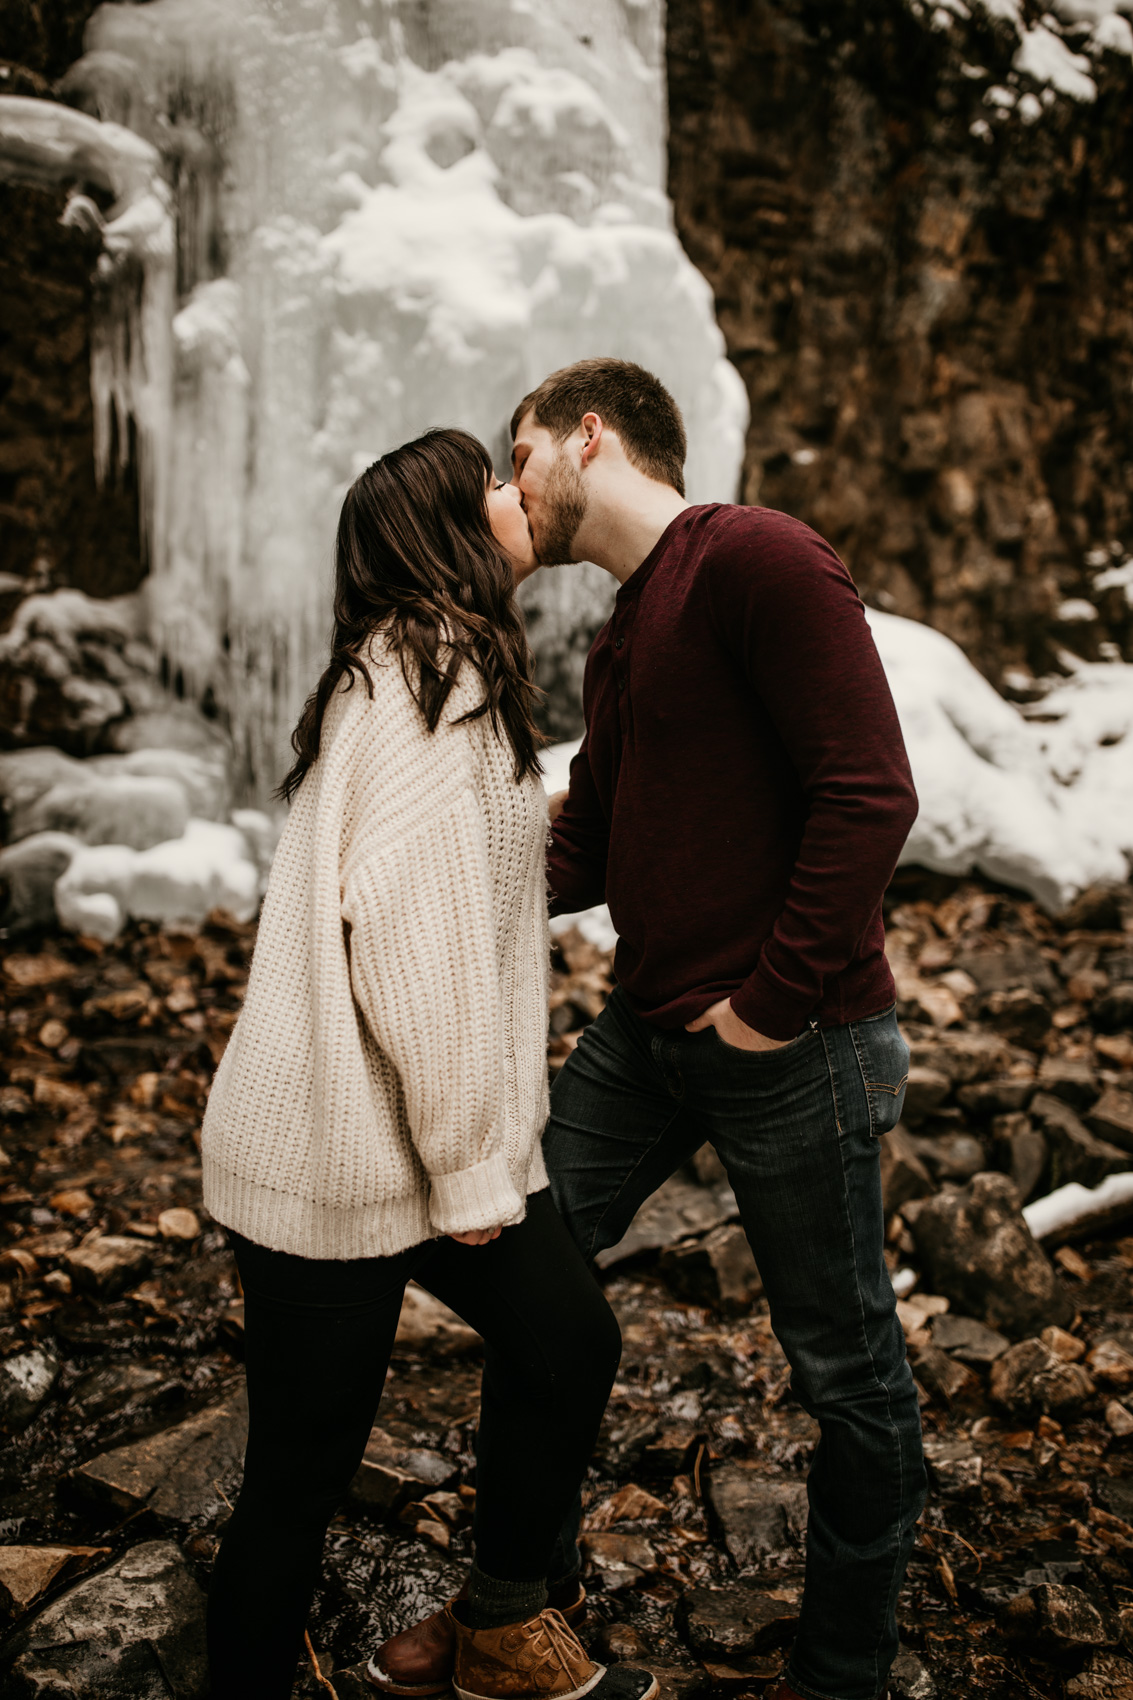 Molly-Trenton_Montana-Waterfall-Engagment-Session-5.jpg